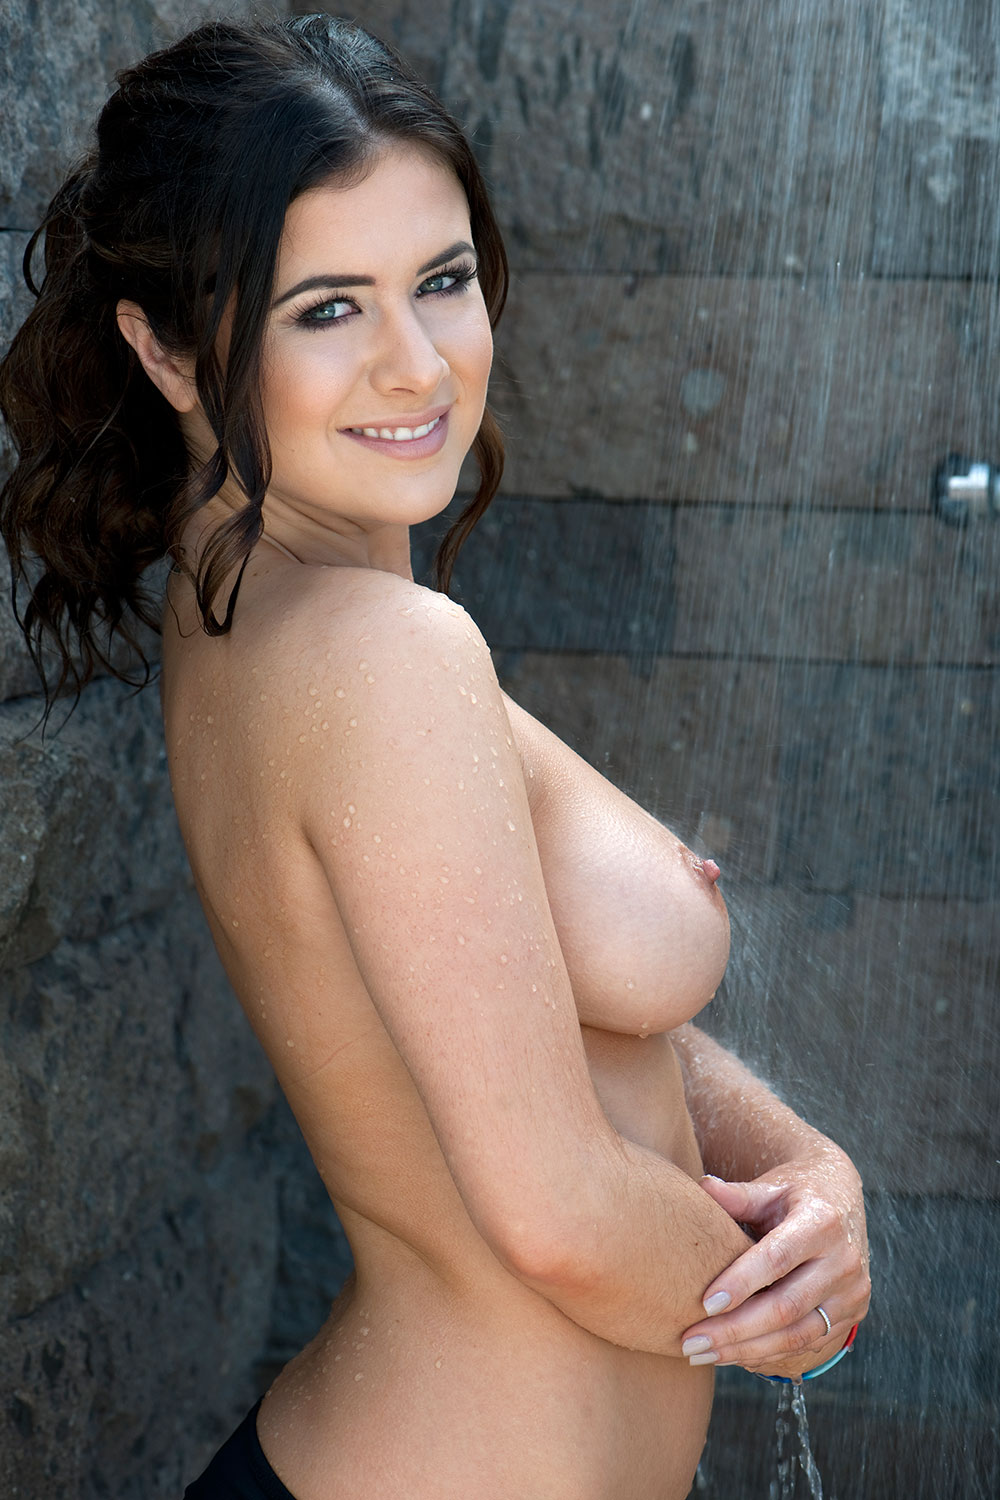 Topless Photos Of Kelly H...